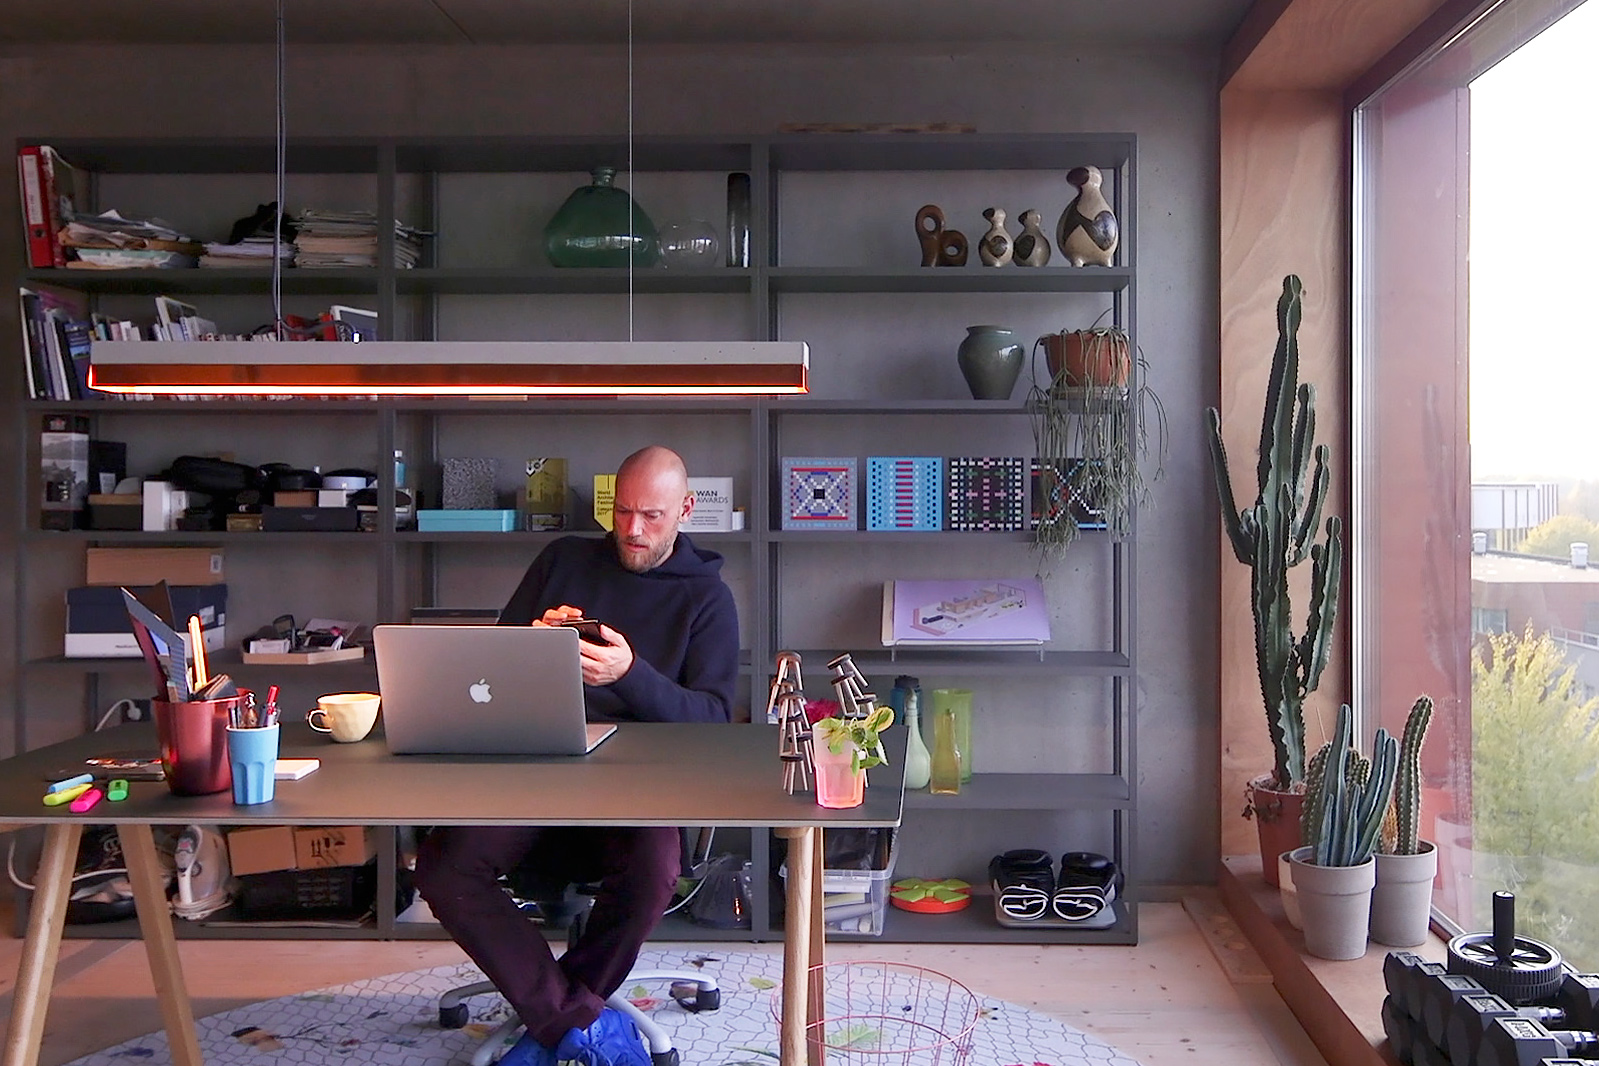 Architectuurvideo Superloft interieur Marc Koehler | Architectuur video